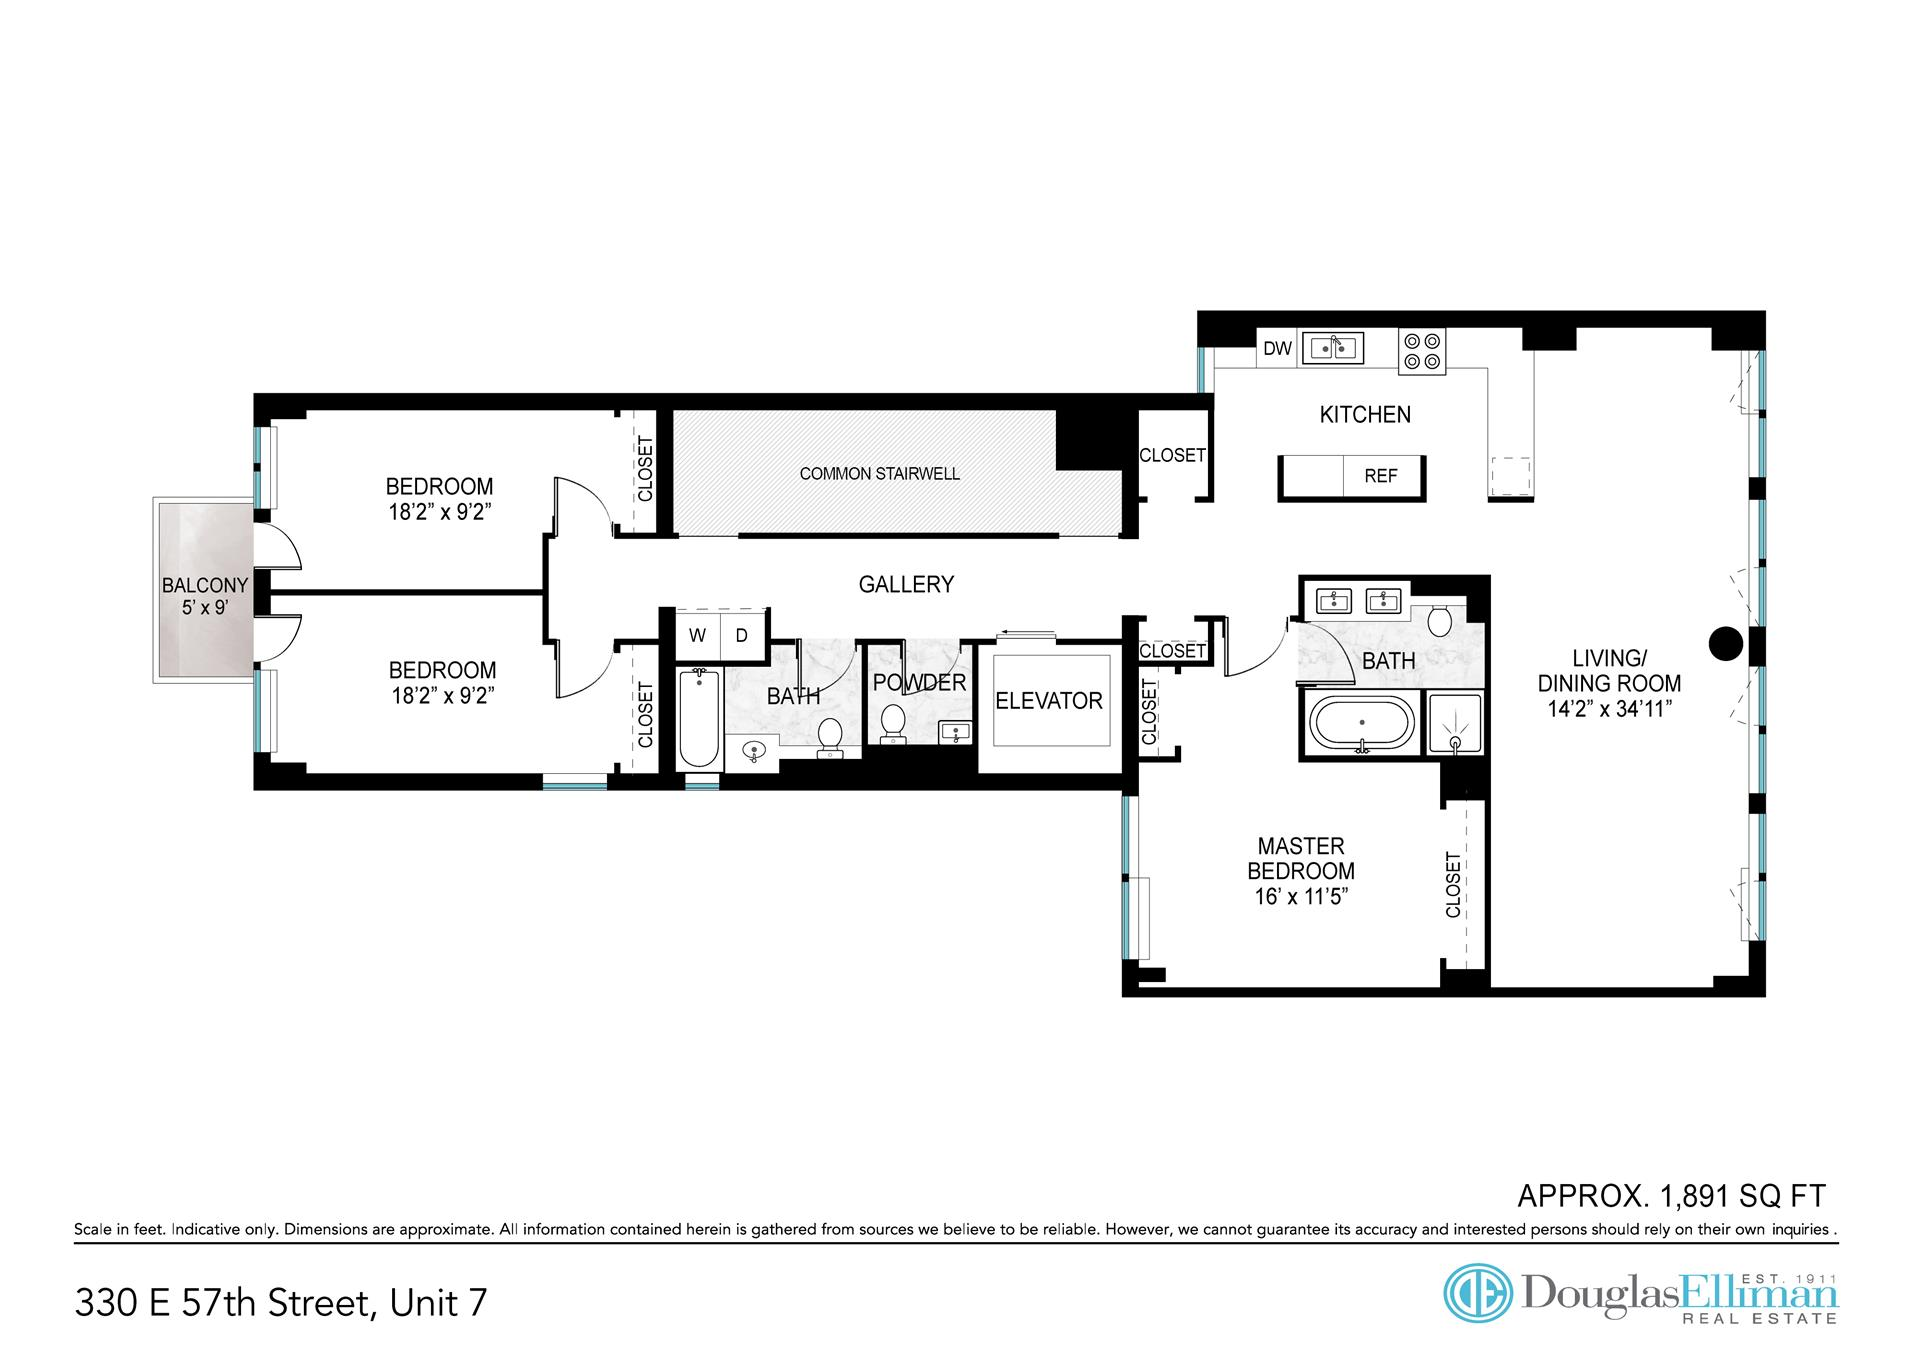 Floor plan of 330 East 57th Street, 330 East 57th Street, 7 - Sutton Area, New York